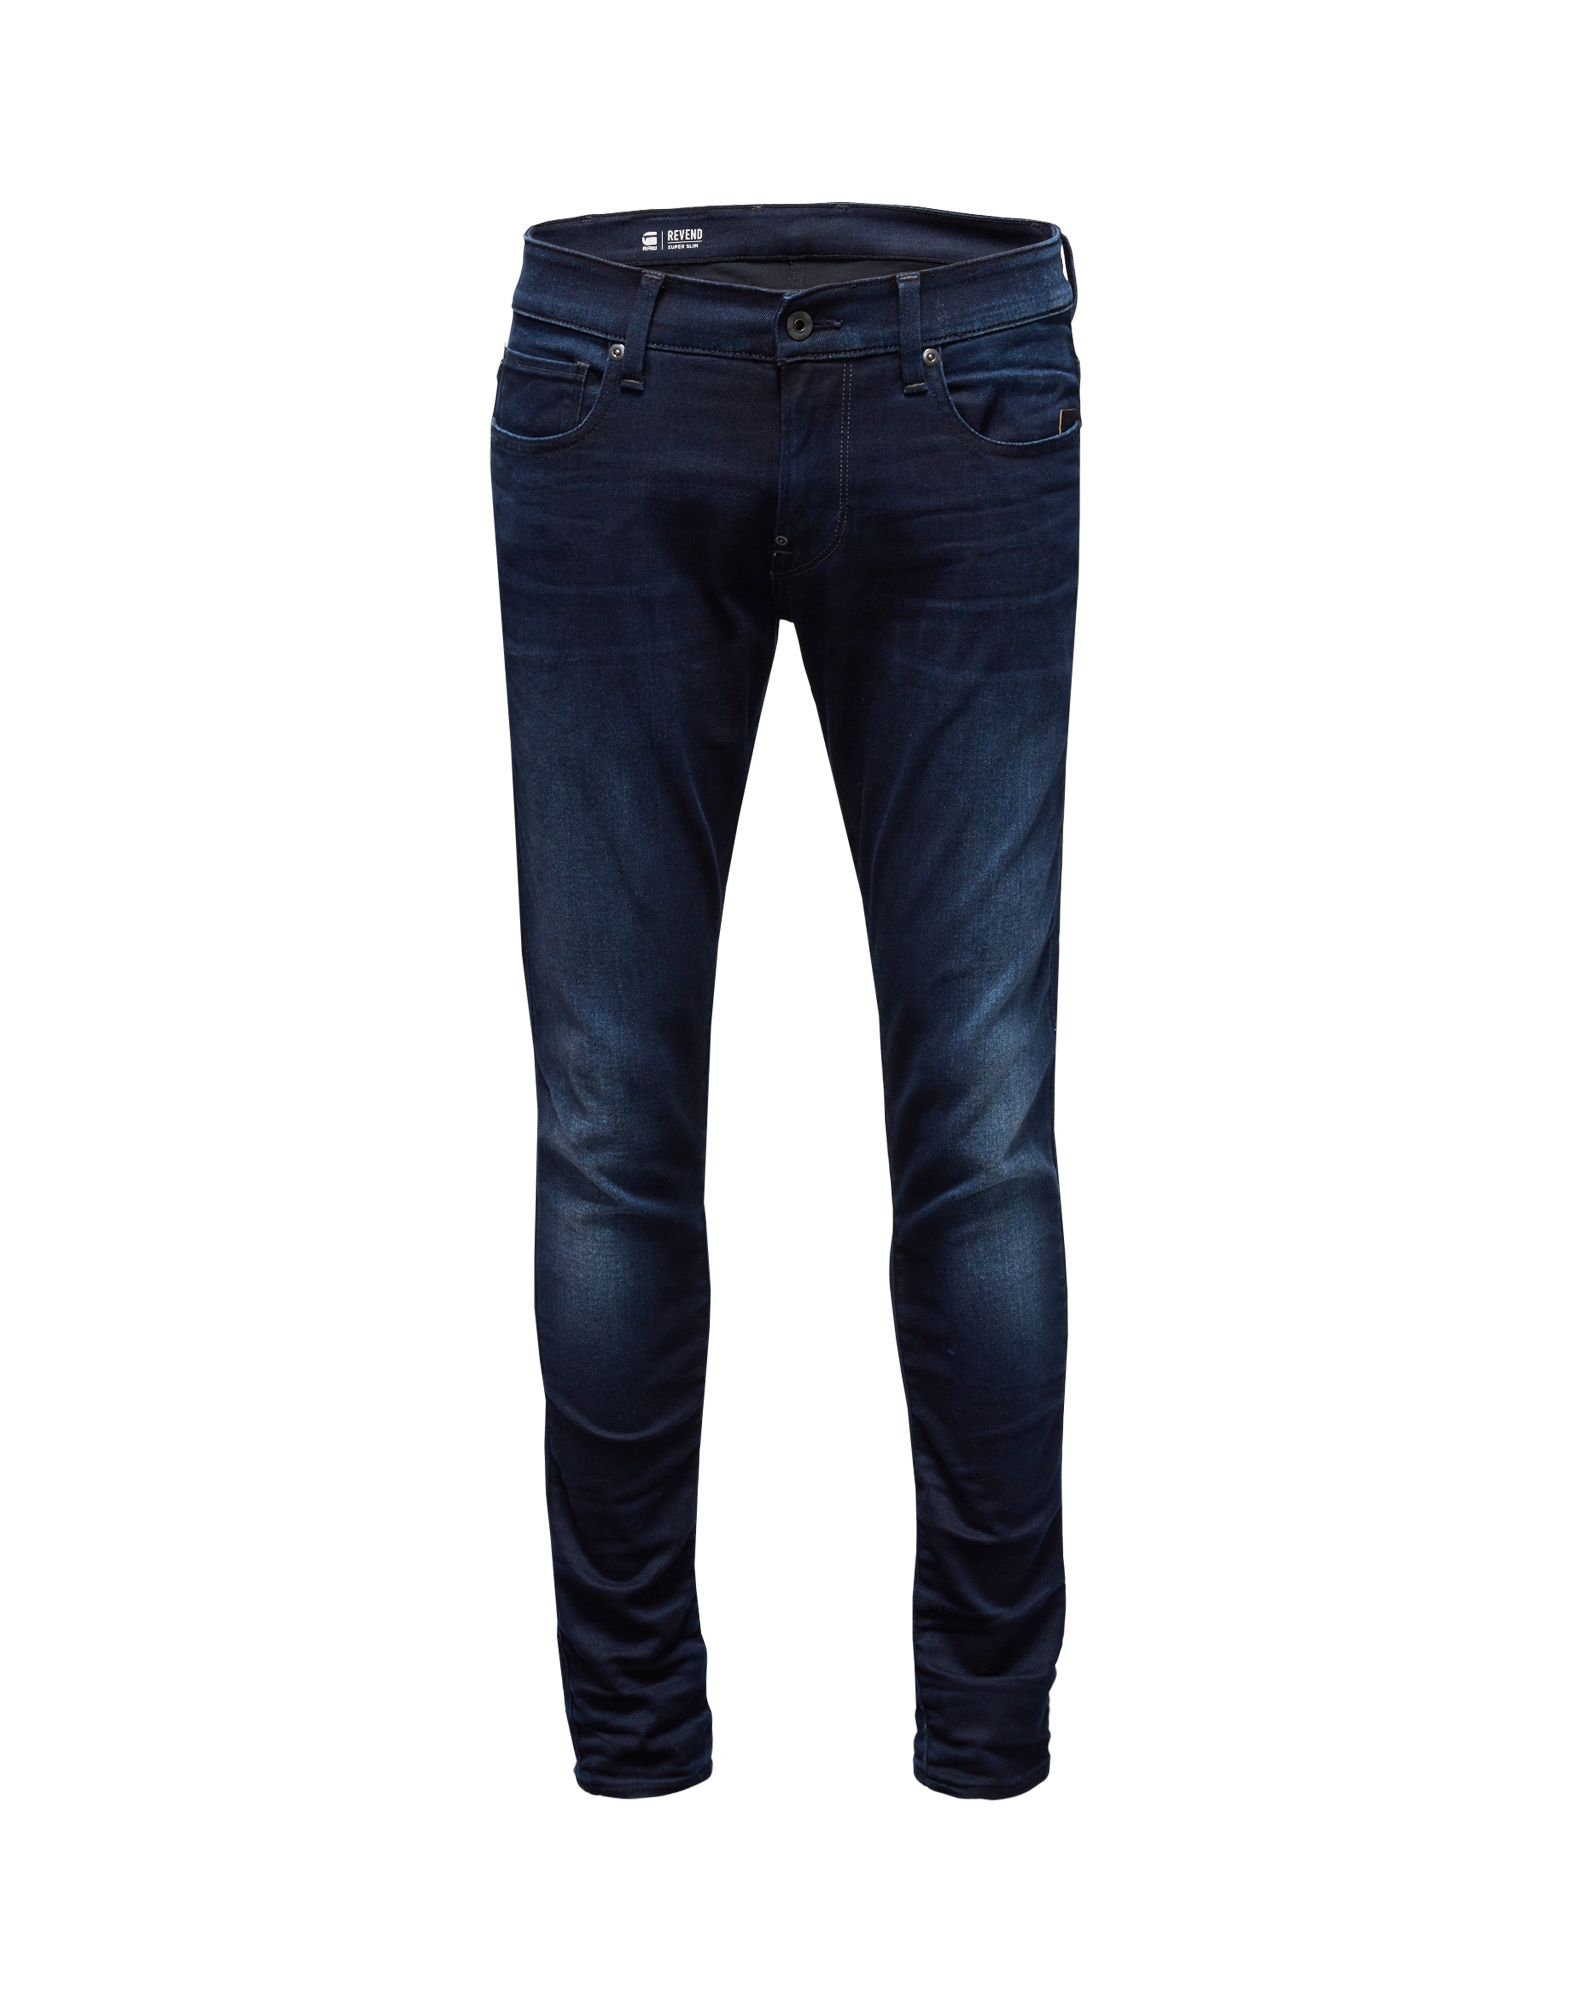 G-STAR RAW Heren Jeans Revend Super Slim blauw denim